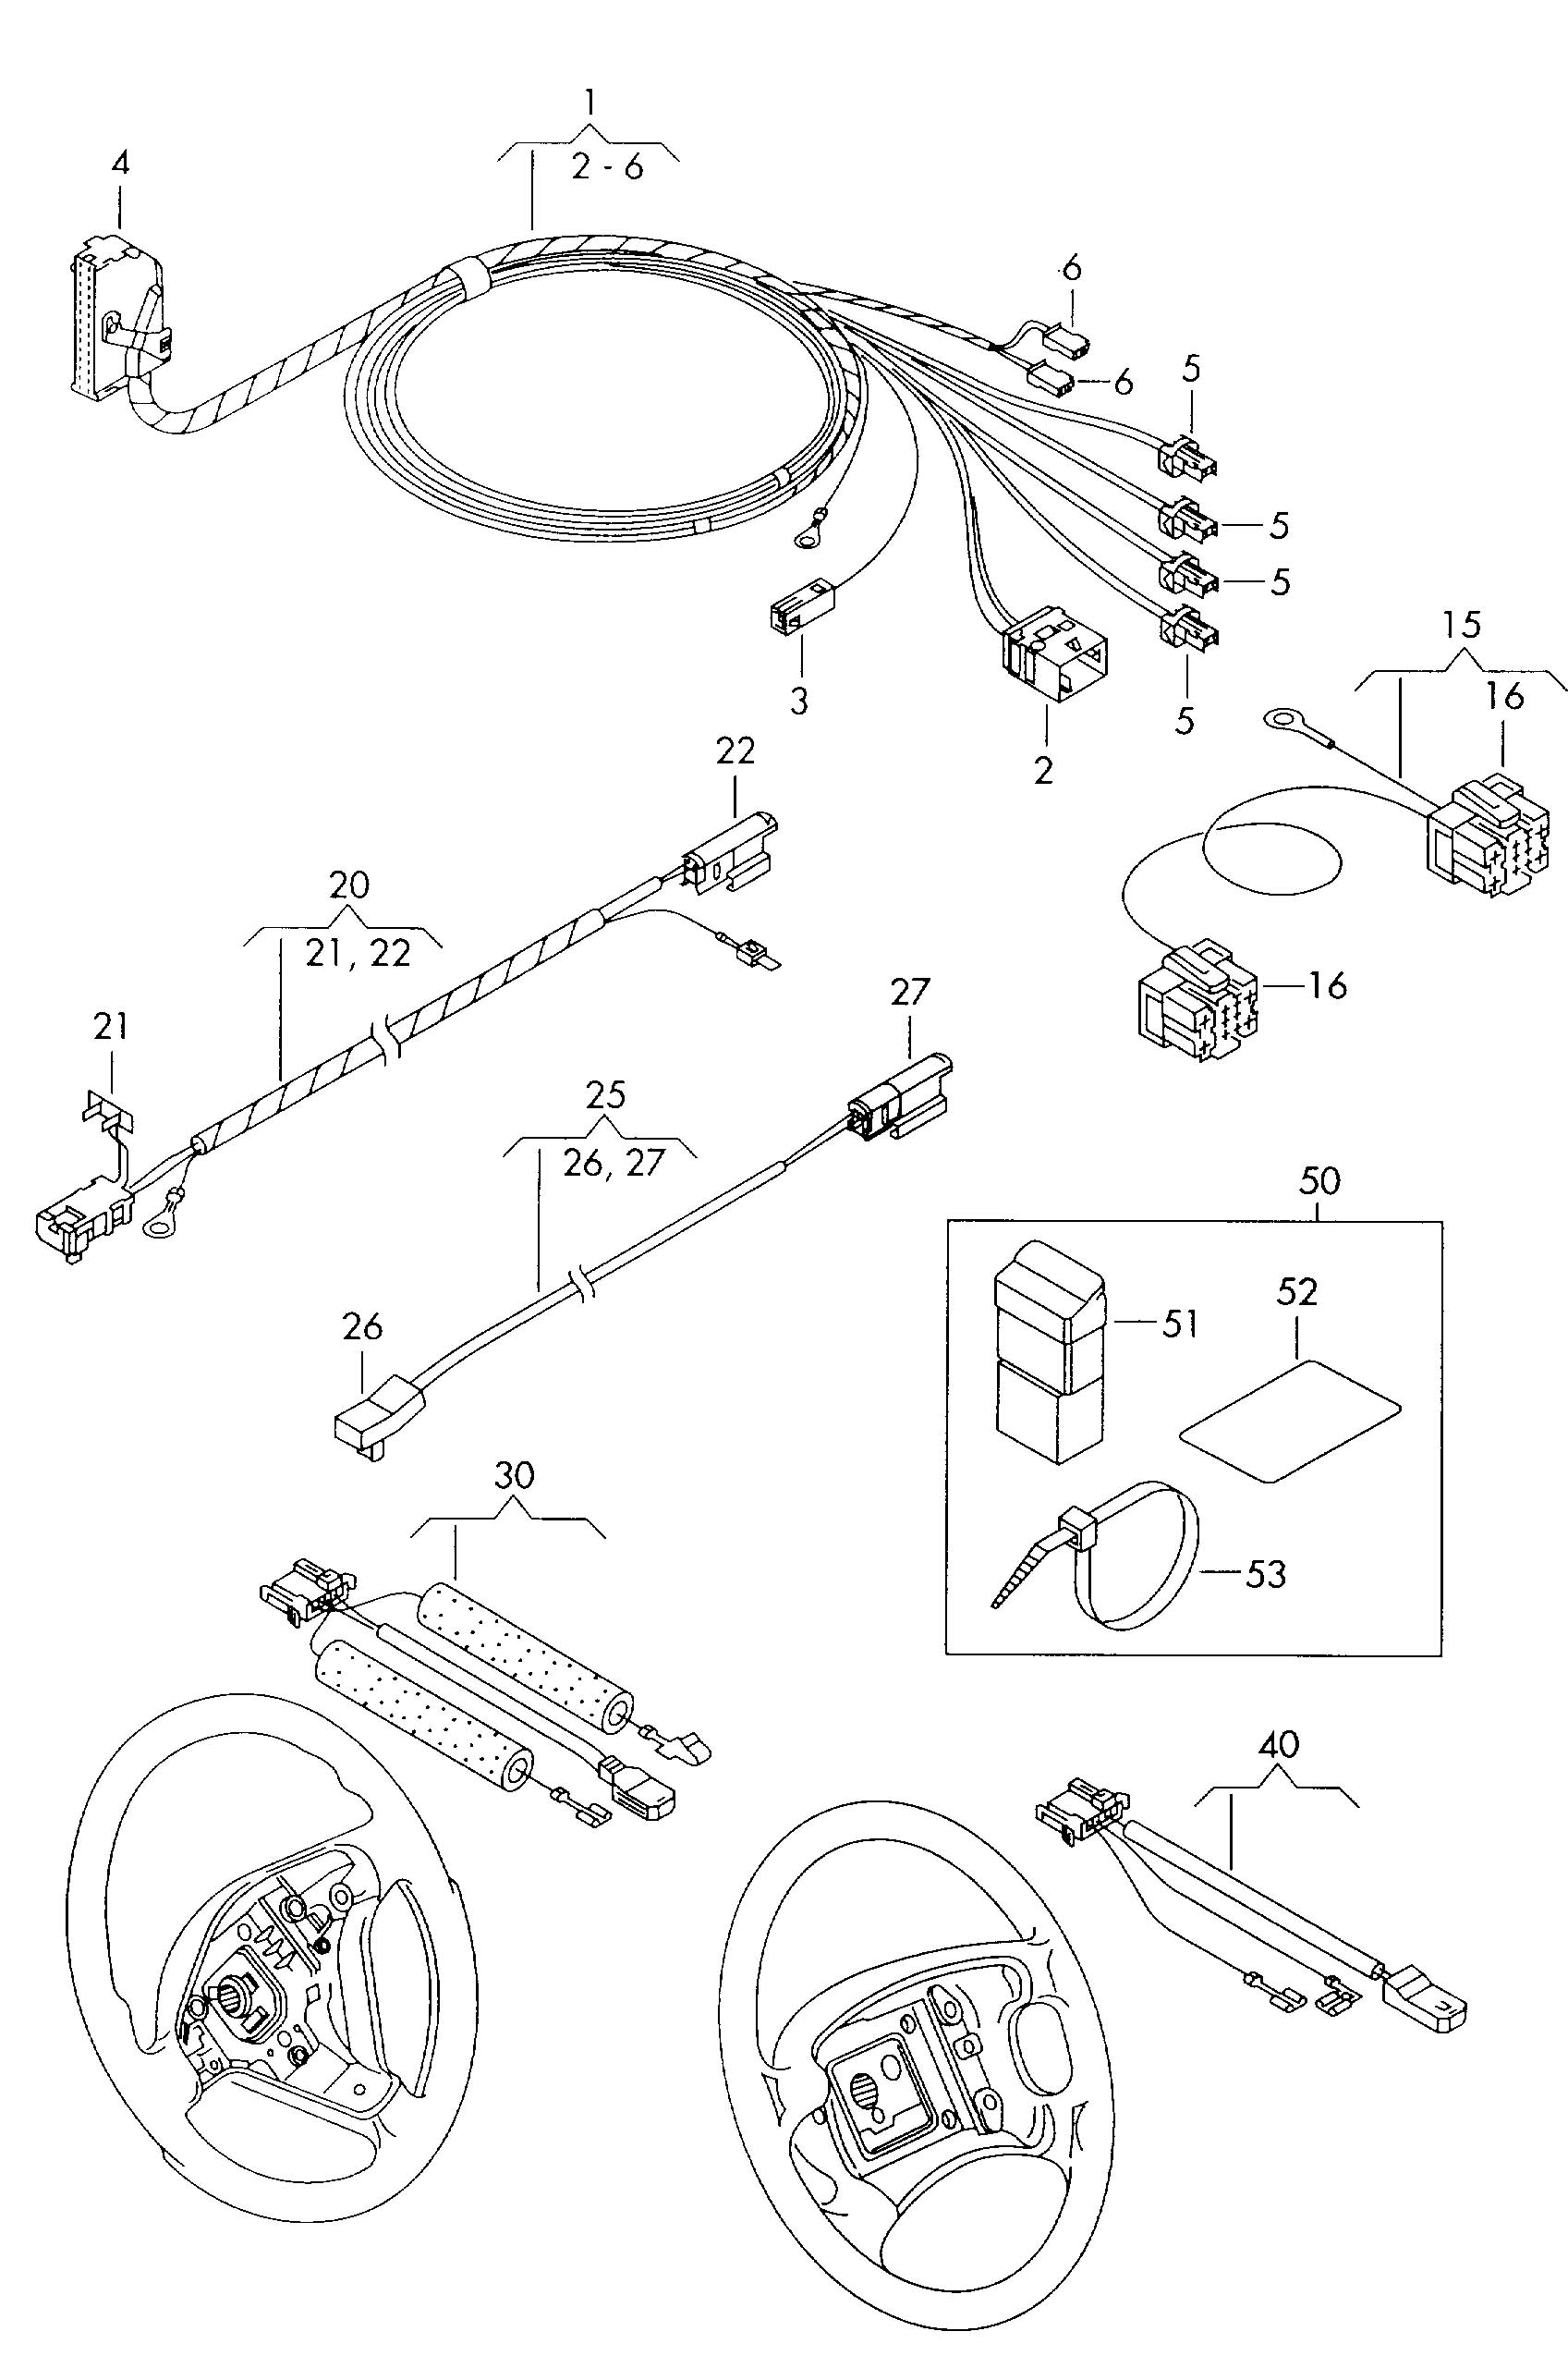 Ground Strap Adapter Harness For Belt Adapter Wiring